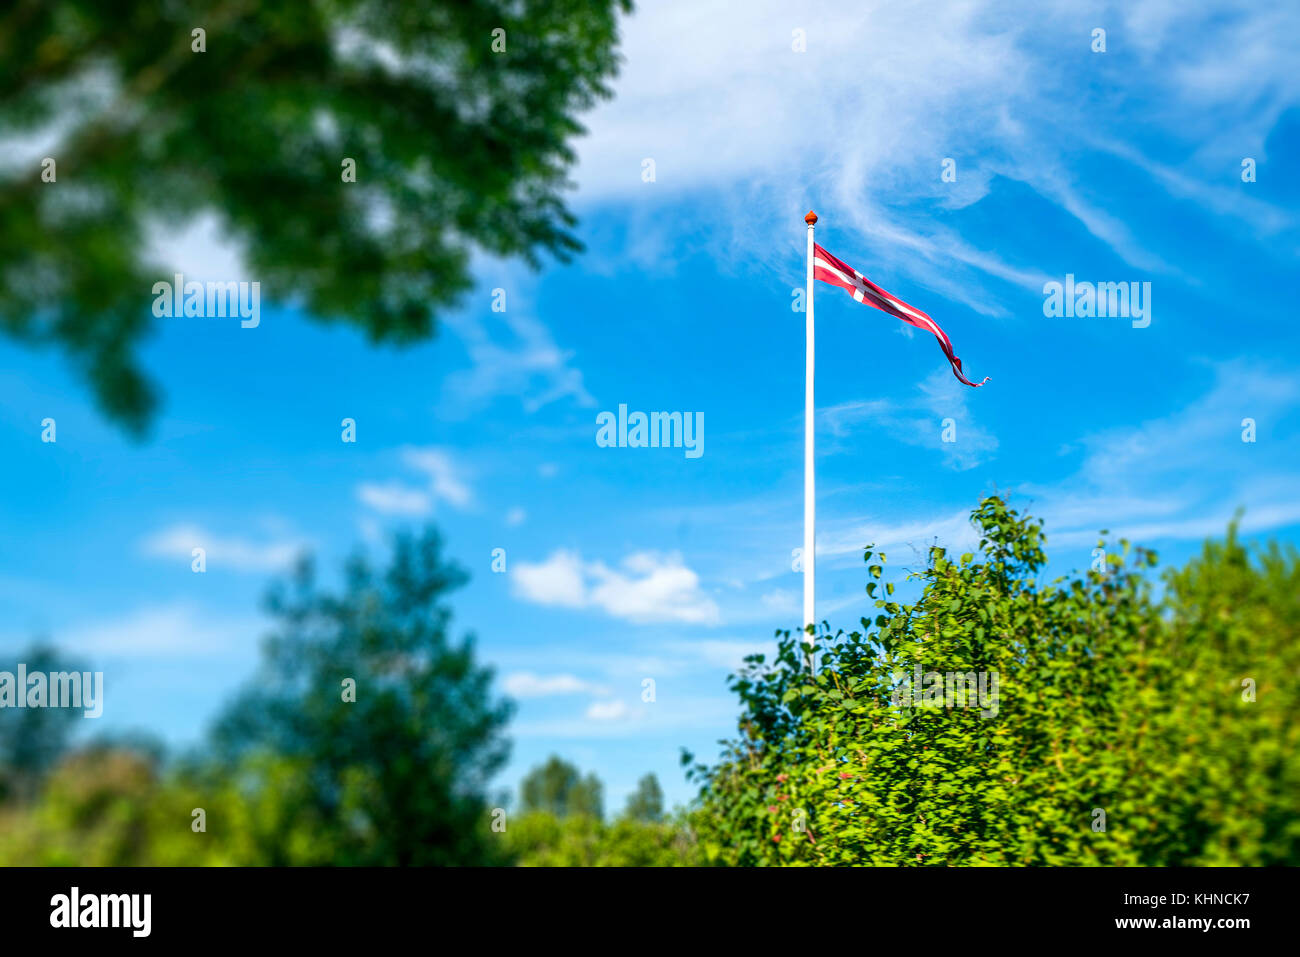 Danish pennant on a white flagpole in a green garden in the summer - Stock Image